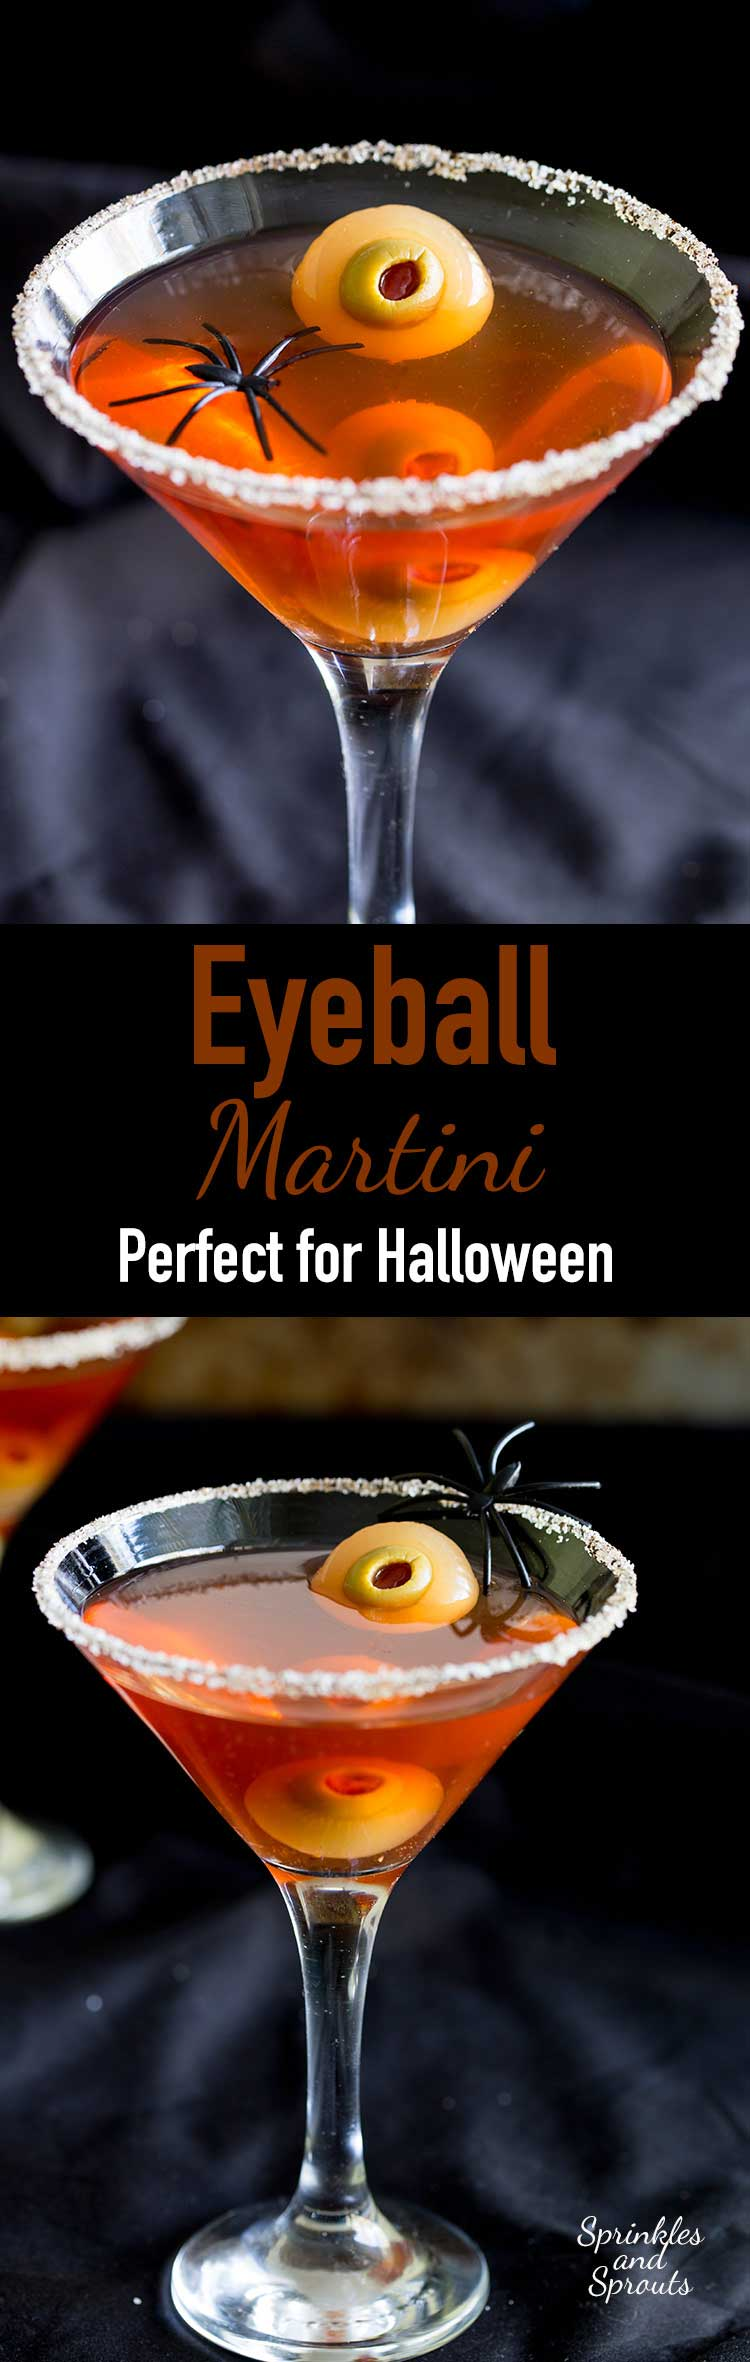 Gross eh?!?!?!?! And totally cool!!! Perfect for Halloween! These eyeball martinis will amuse and disgust your guests in equal measure! www.sprinklesandsprouts.com/eyeball-martini